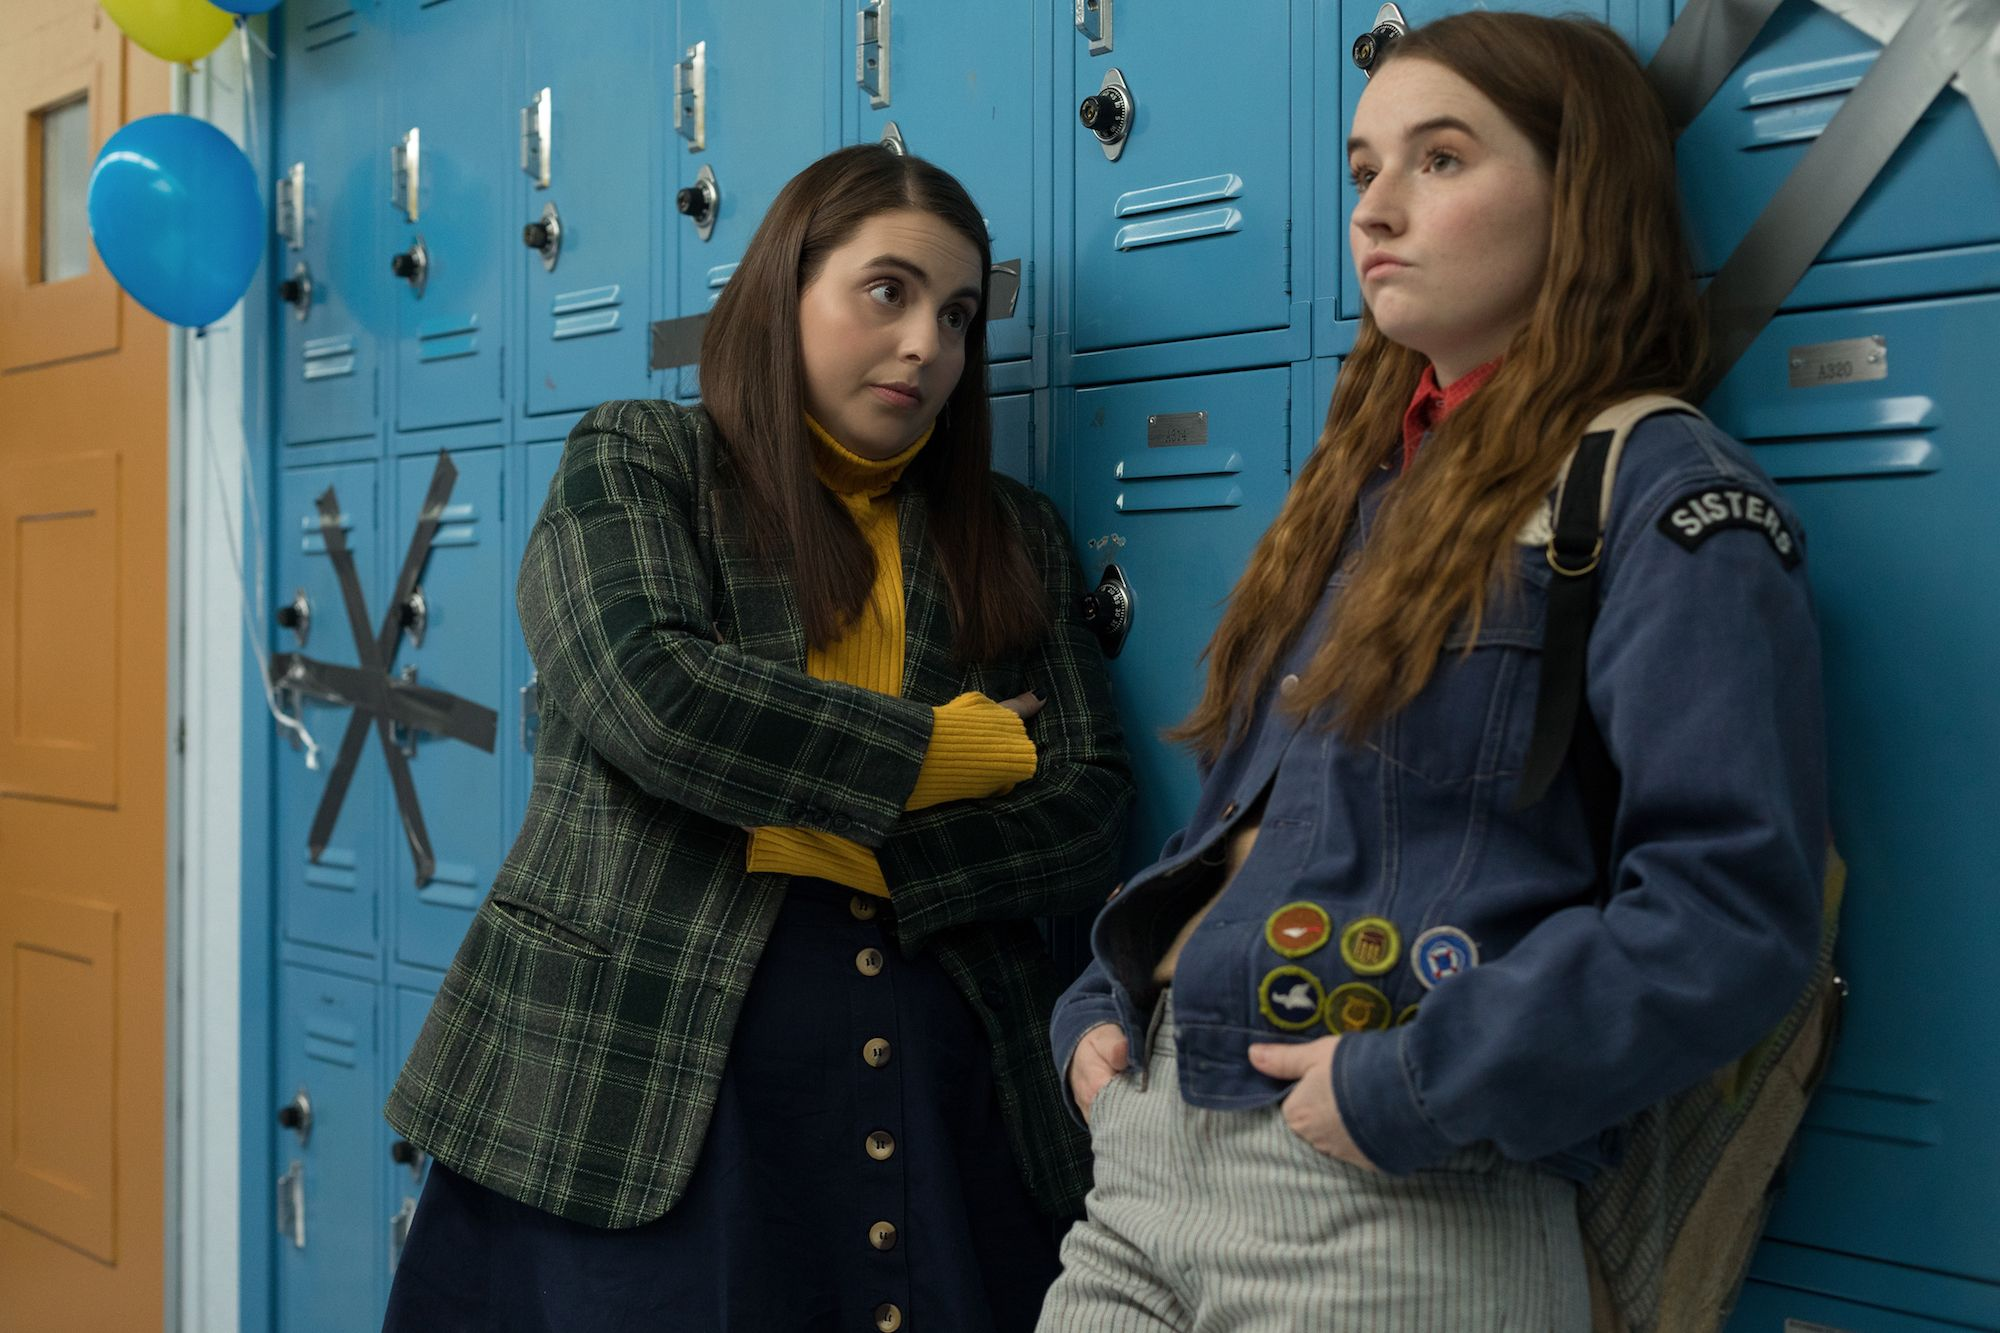 The Booksmart Cast Opens Up About Porn, the Patriarchy, and the Problem of Likability